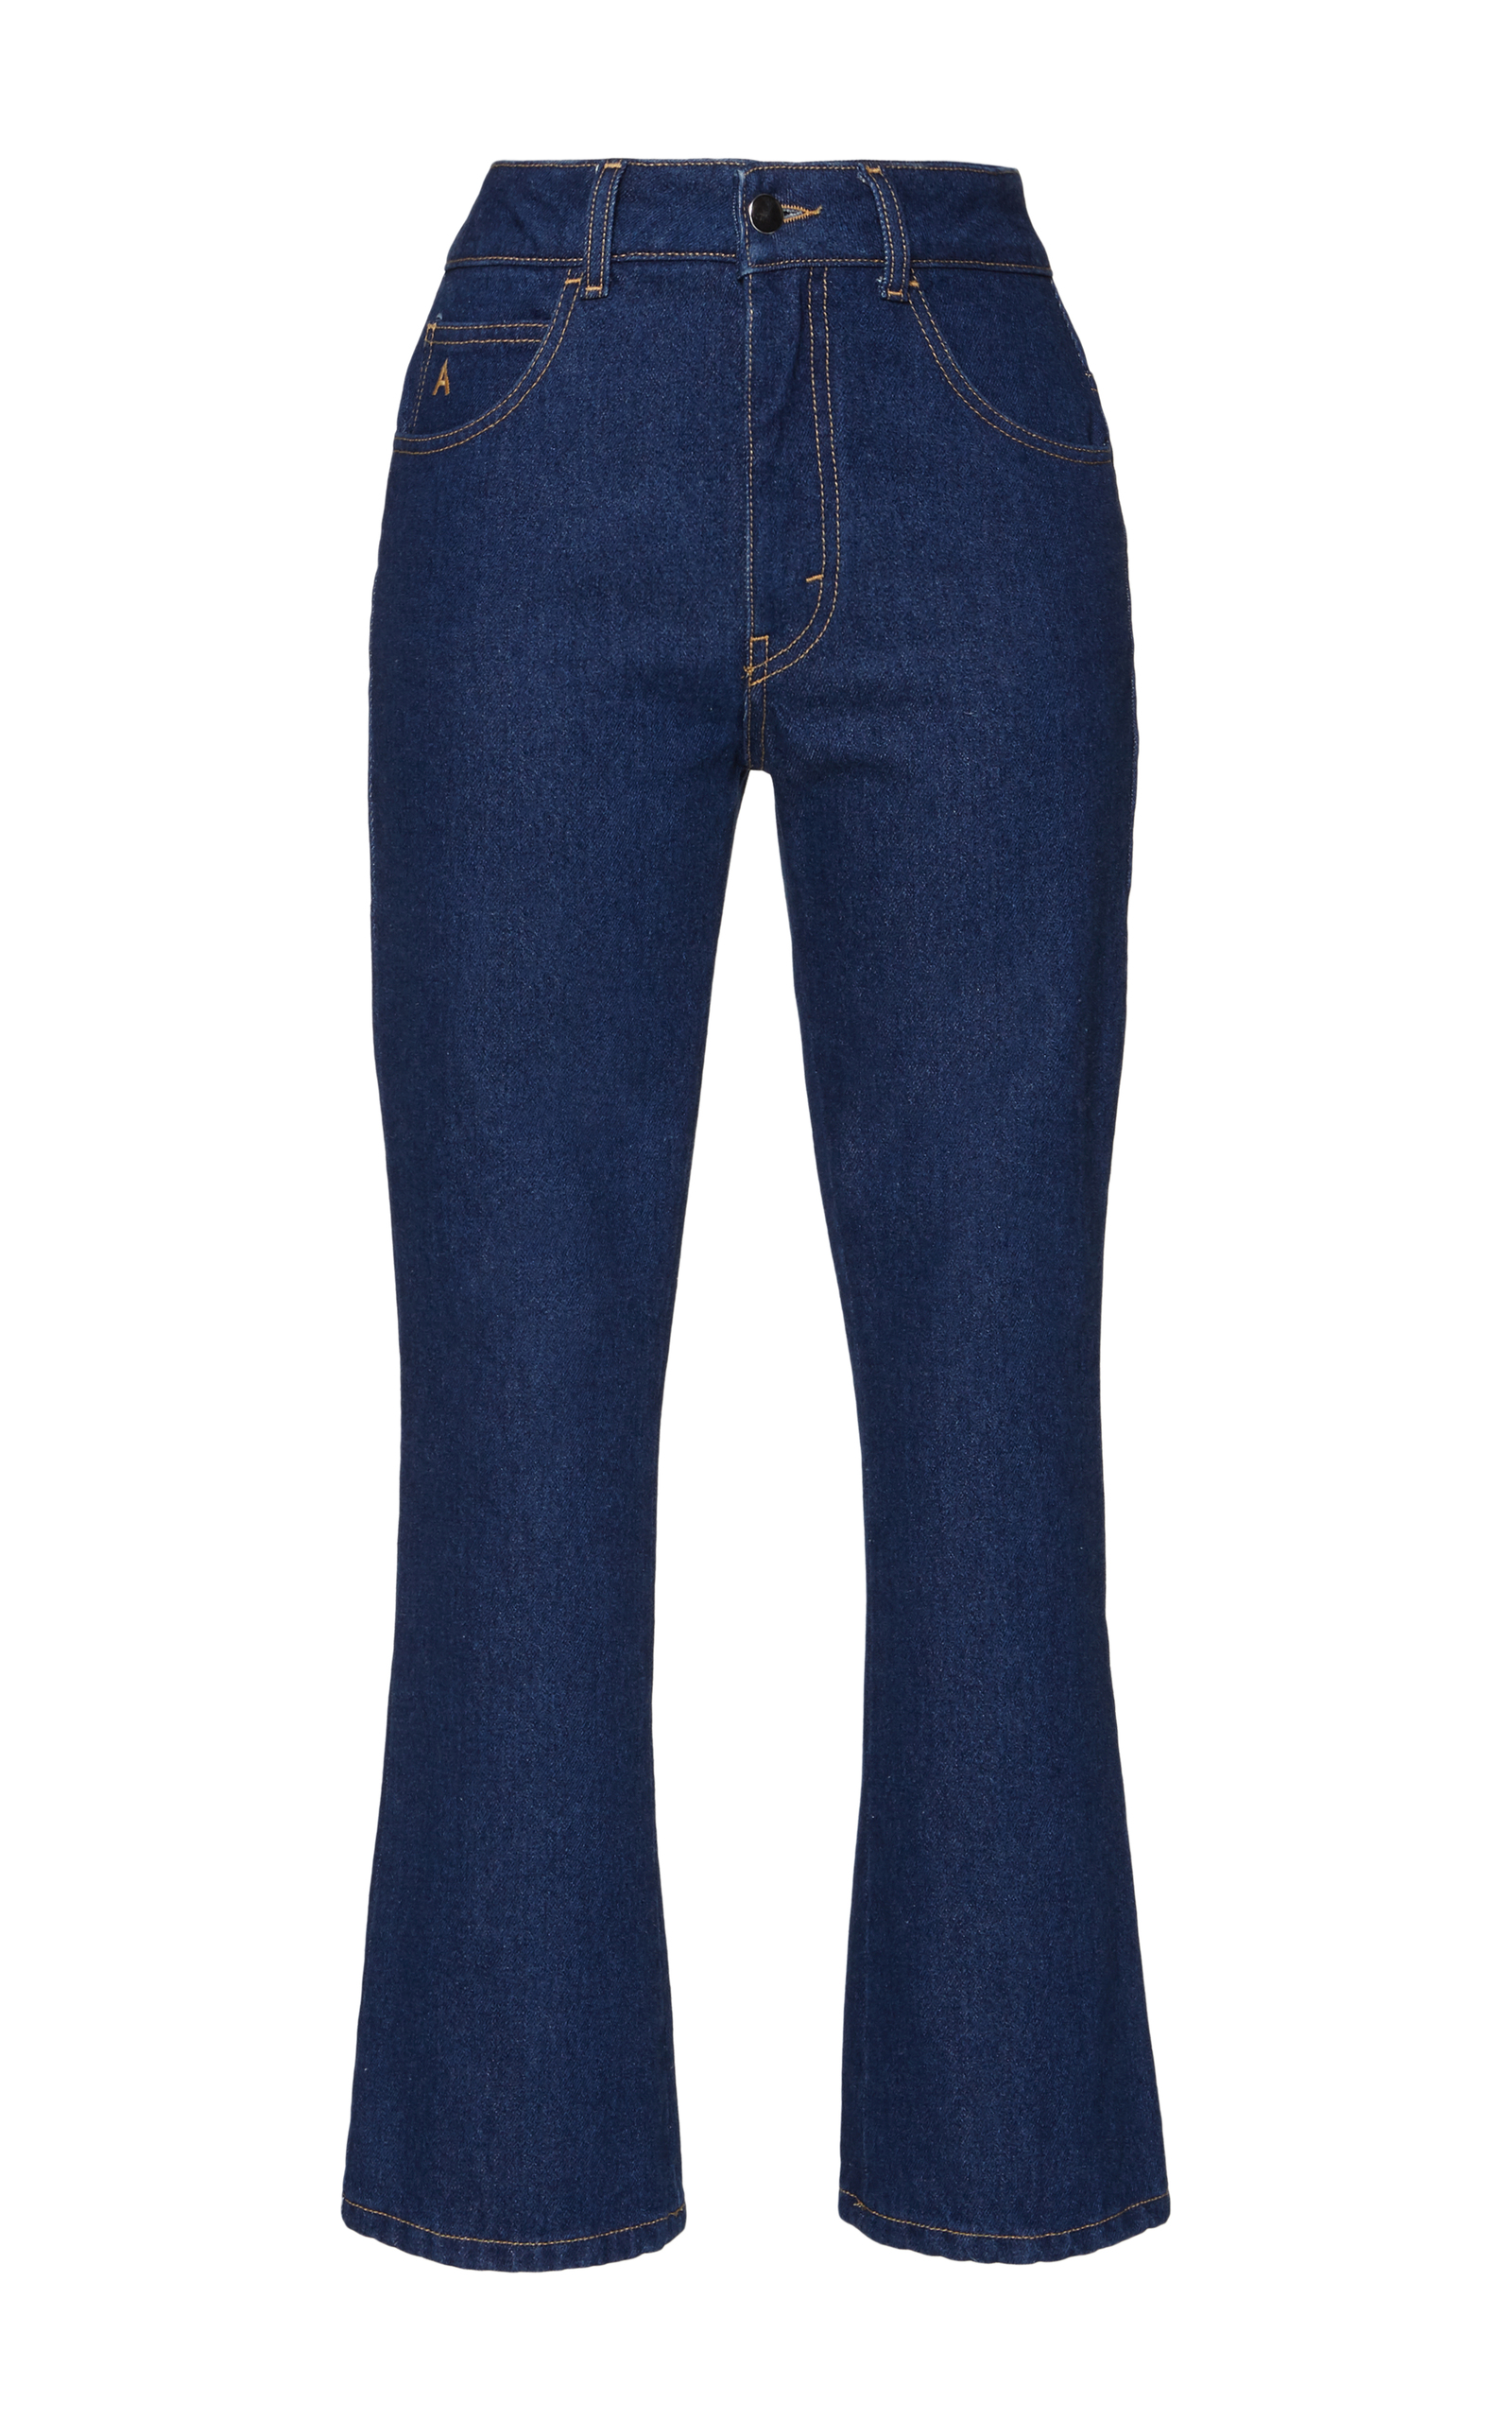 flared trousers - Blue Blanca EvZEq